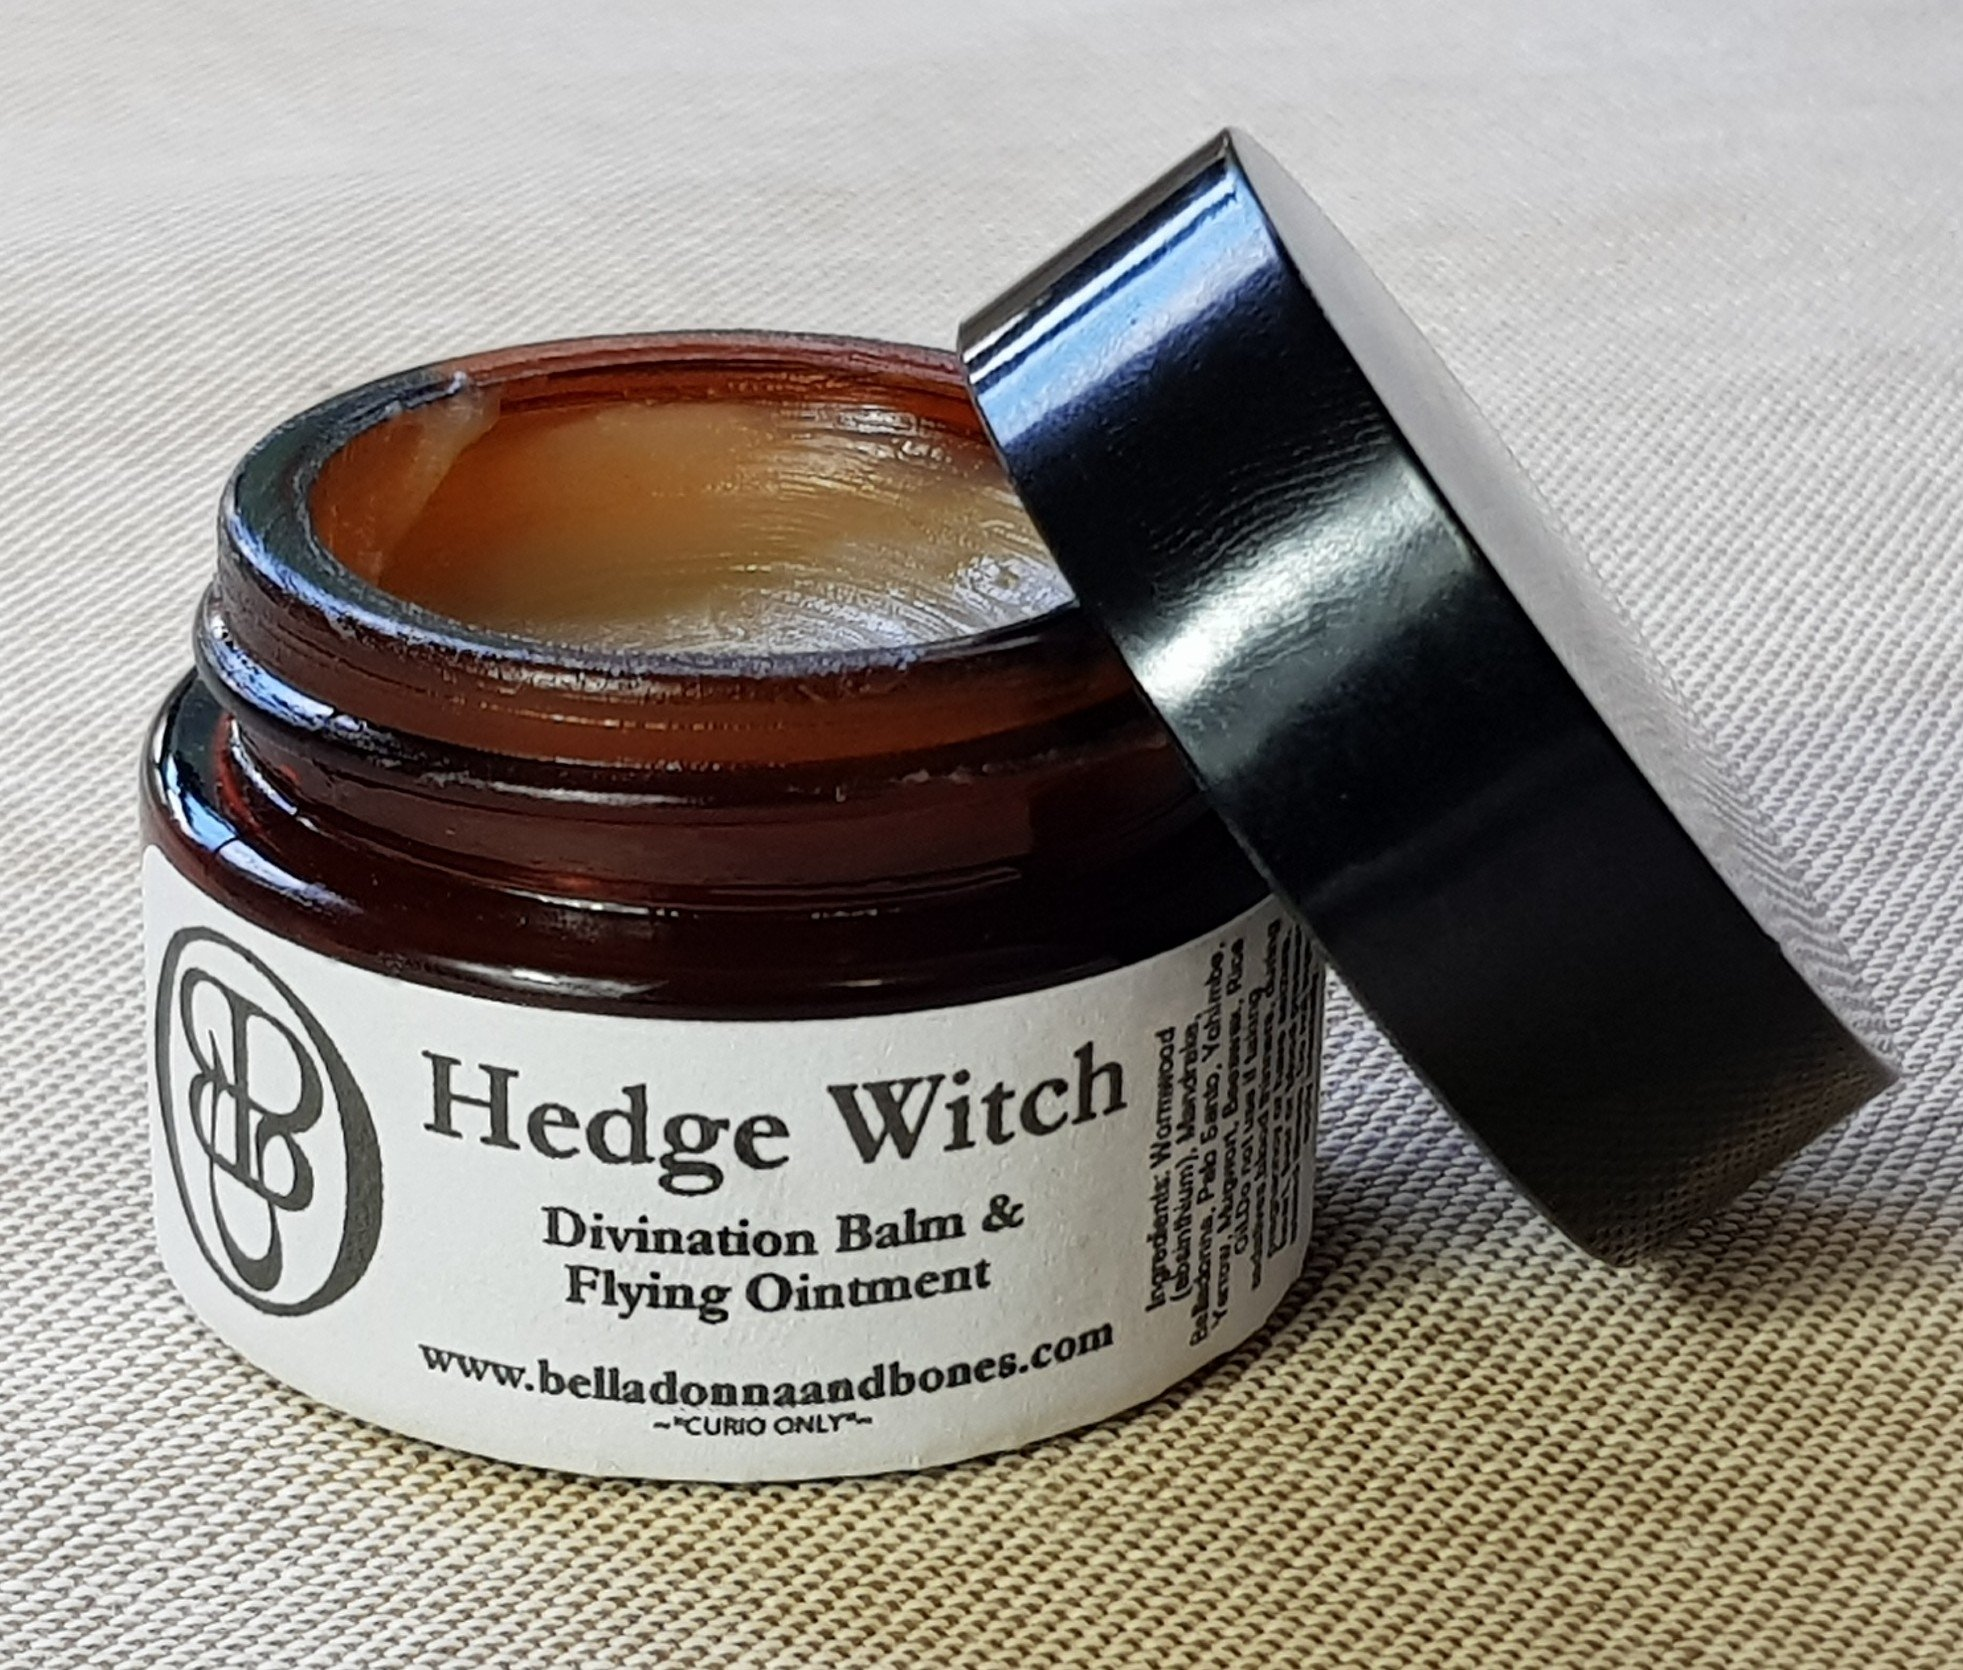 Hedge Witch - Divination Balm & Flying Ointment